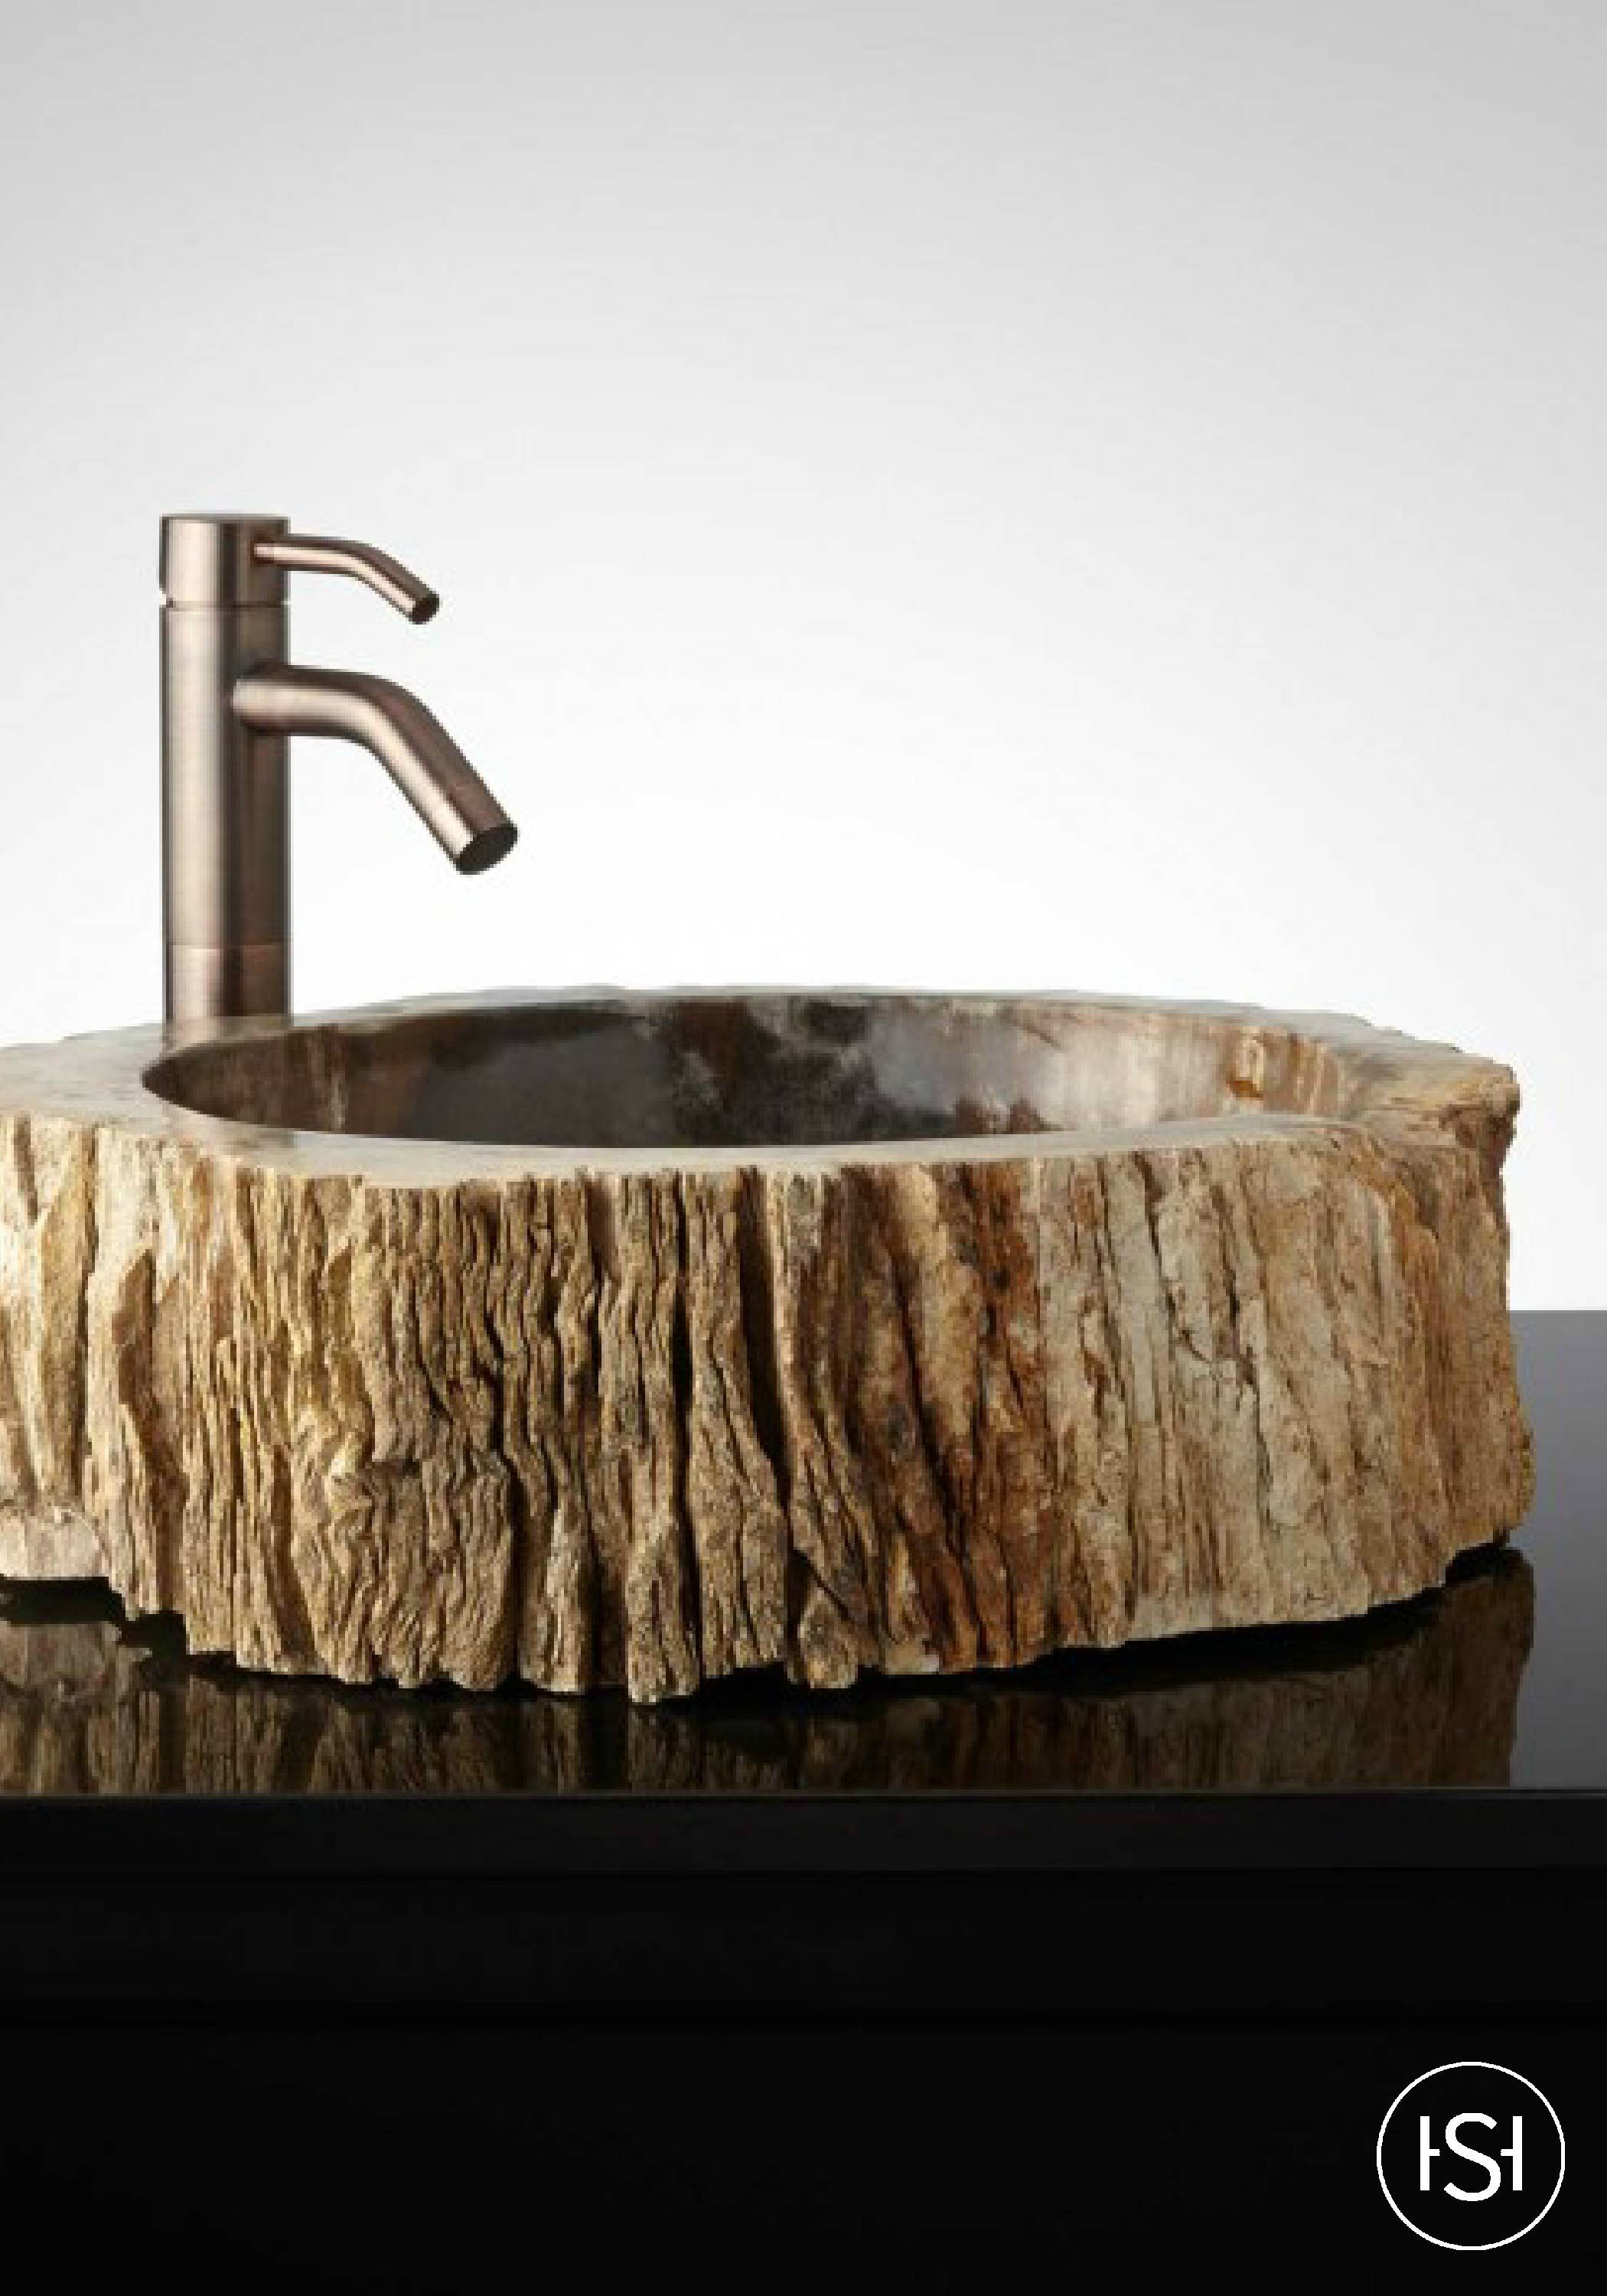 rustic faucets bathroom price faucet repair terrific designs bathtub installation decoration inspirations creative pfister